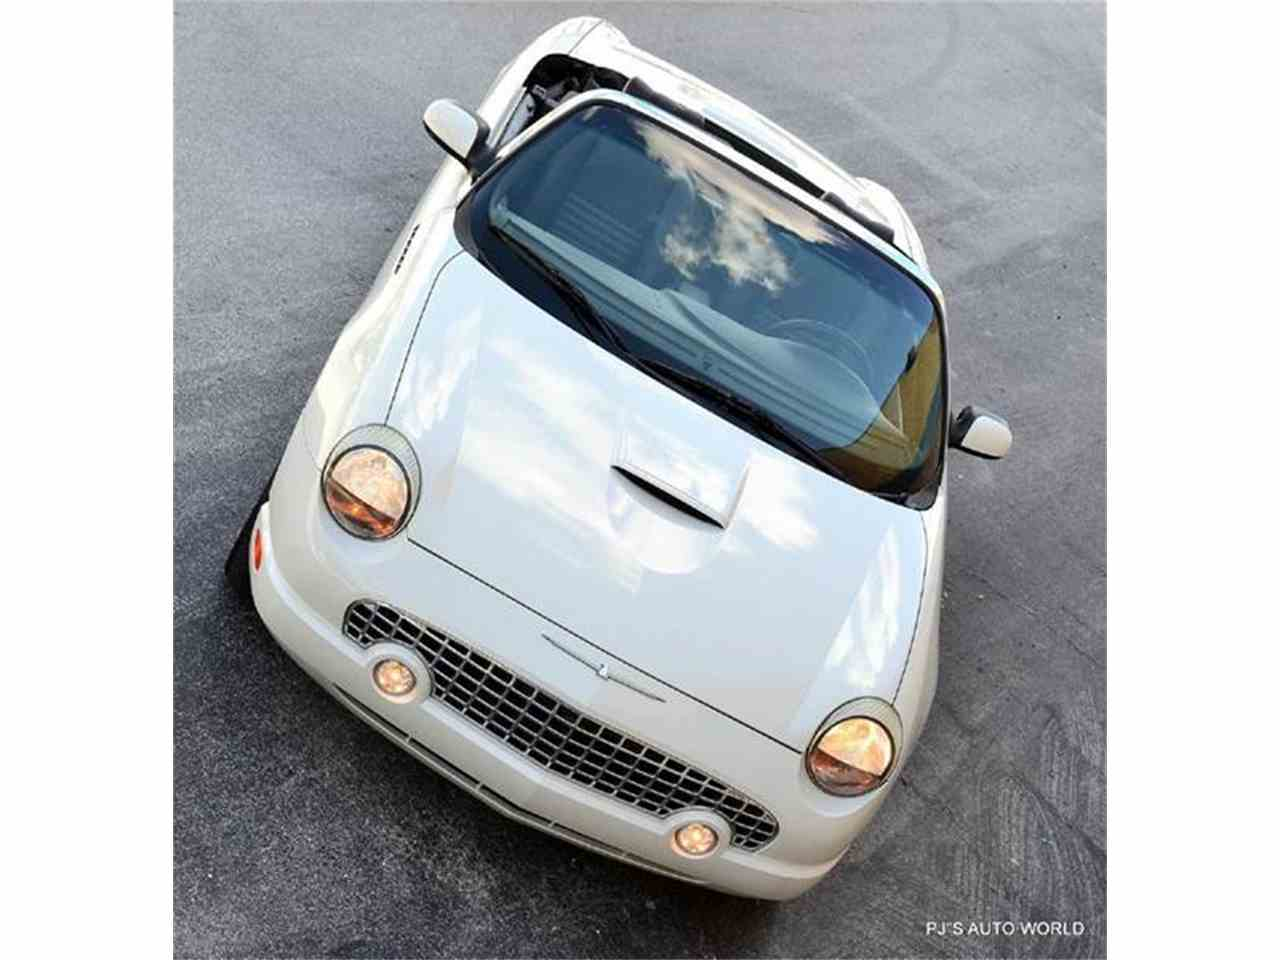 Large Picture of '02 Ford Thunderbird located in Florida - $16,900.00 Offered by PJ's Auto World - IW29